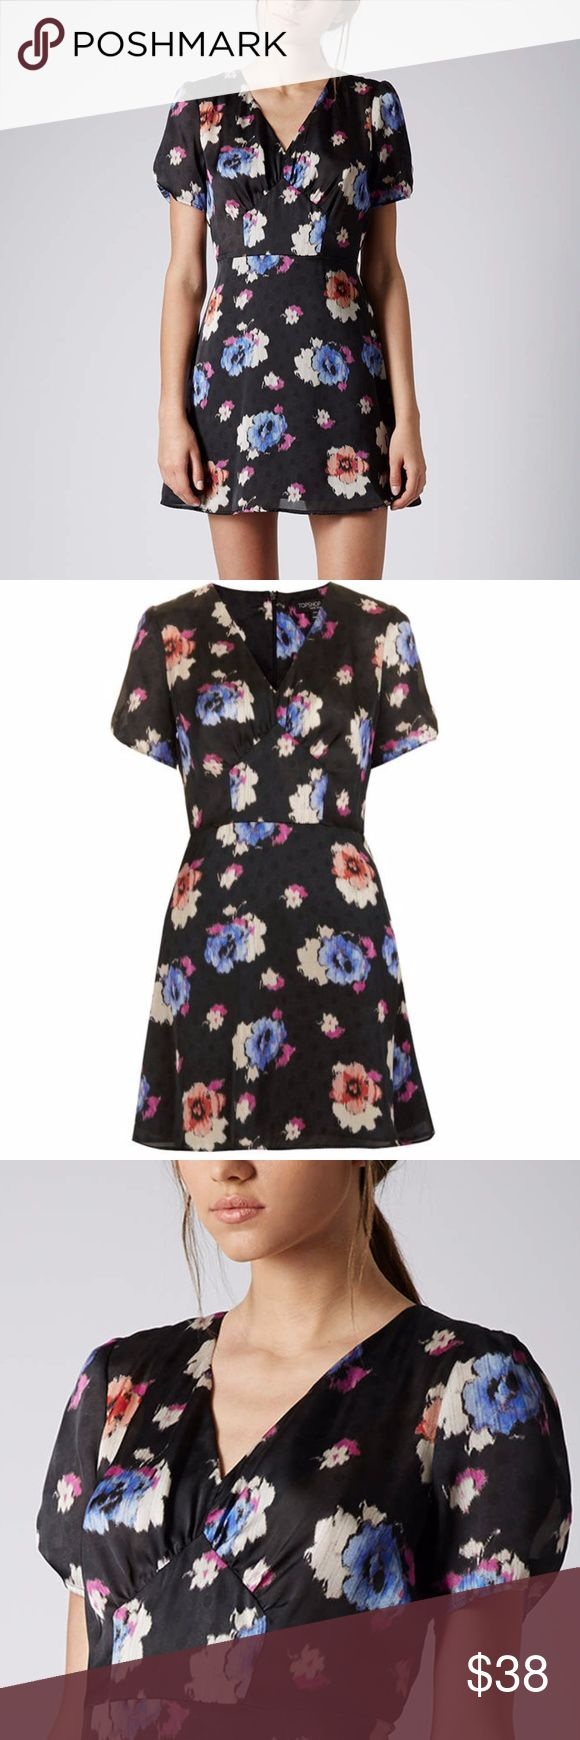 TOPSHOP Petite Spot Floral Tea Dress An exclusively petite dress from TOPSHOP with an all over floral rose print on top of a faded polka dot pattern in the background. Fastens up the back with a concealed zipper. Has a flattering v-neck line. Would probably need a slip underneath. Petite exclusive spot floral tea dress in black. 100% Polyester. Size 4P. In great used condition. No trades. Topshop PETITE Dresses Mini